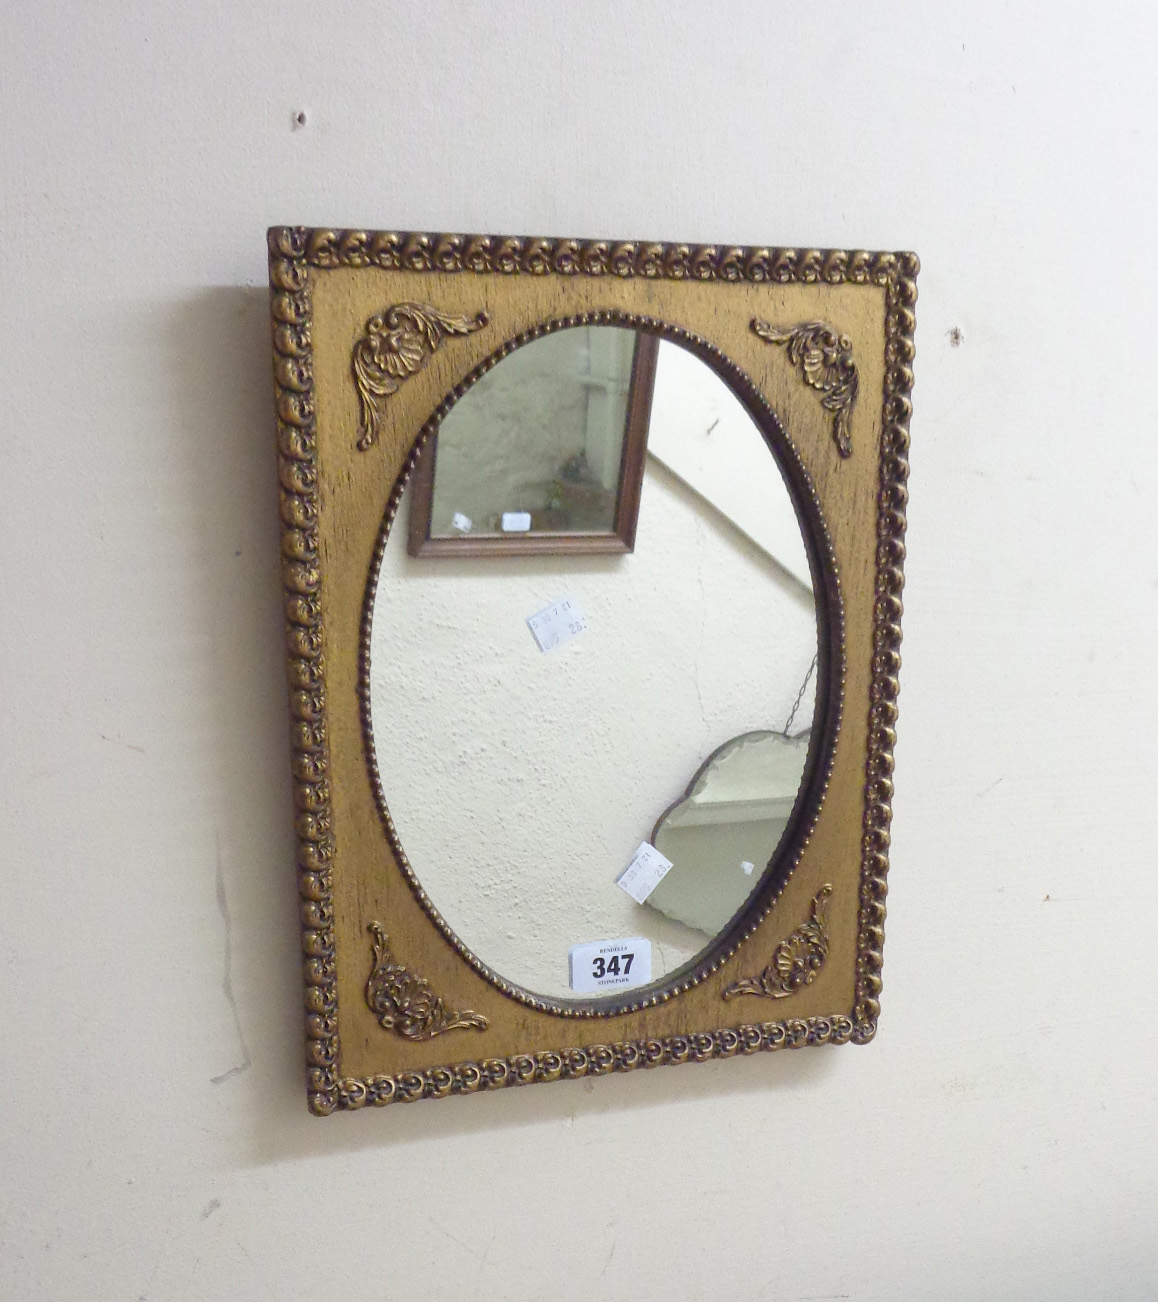 A vintage small gilt framed wall mirror with applied decoration and oval plate